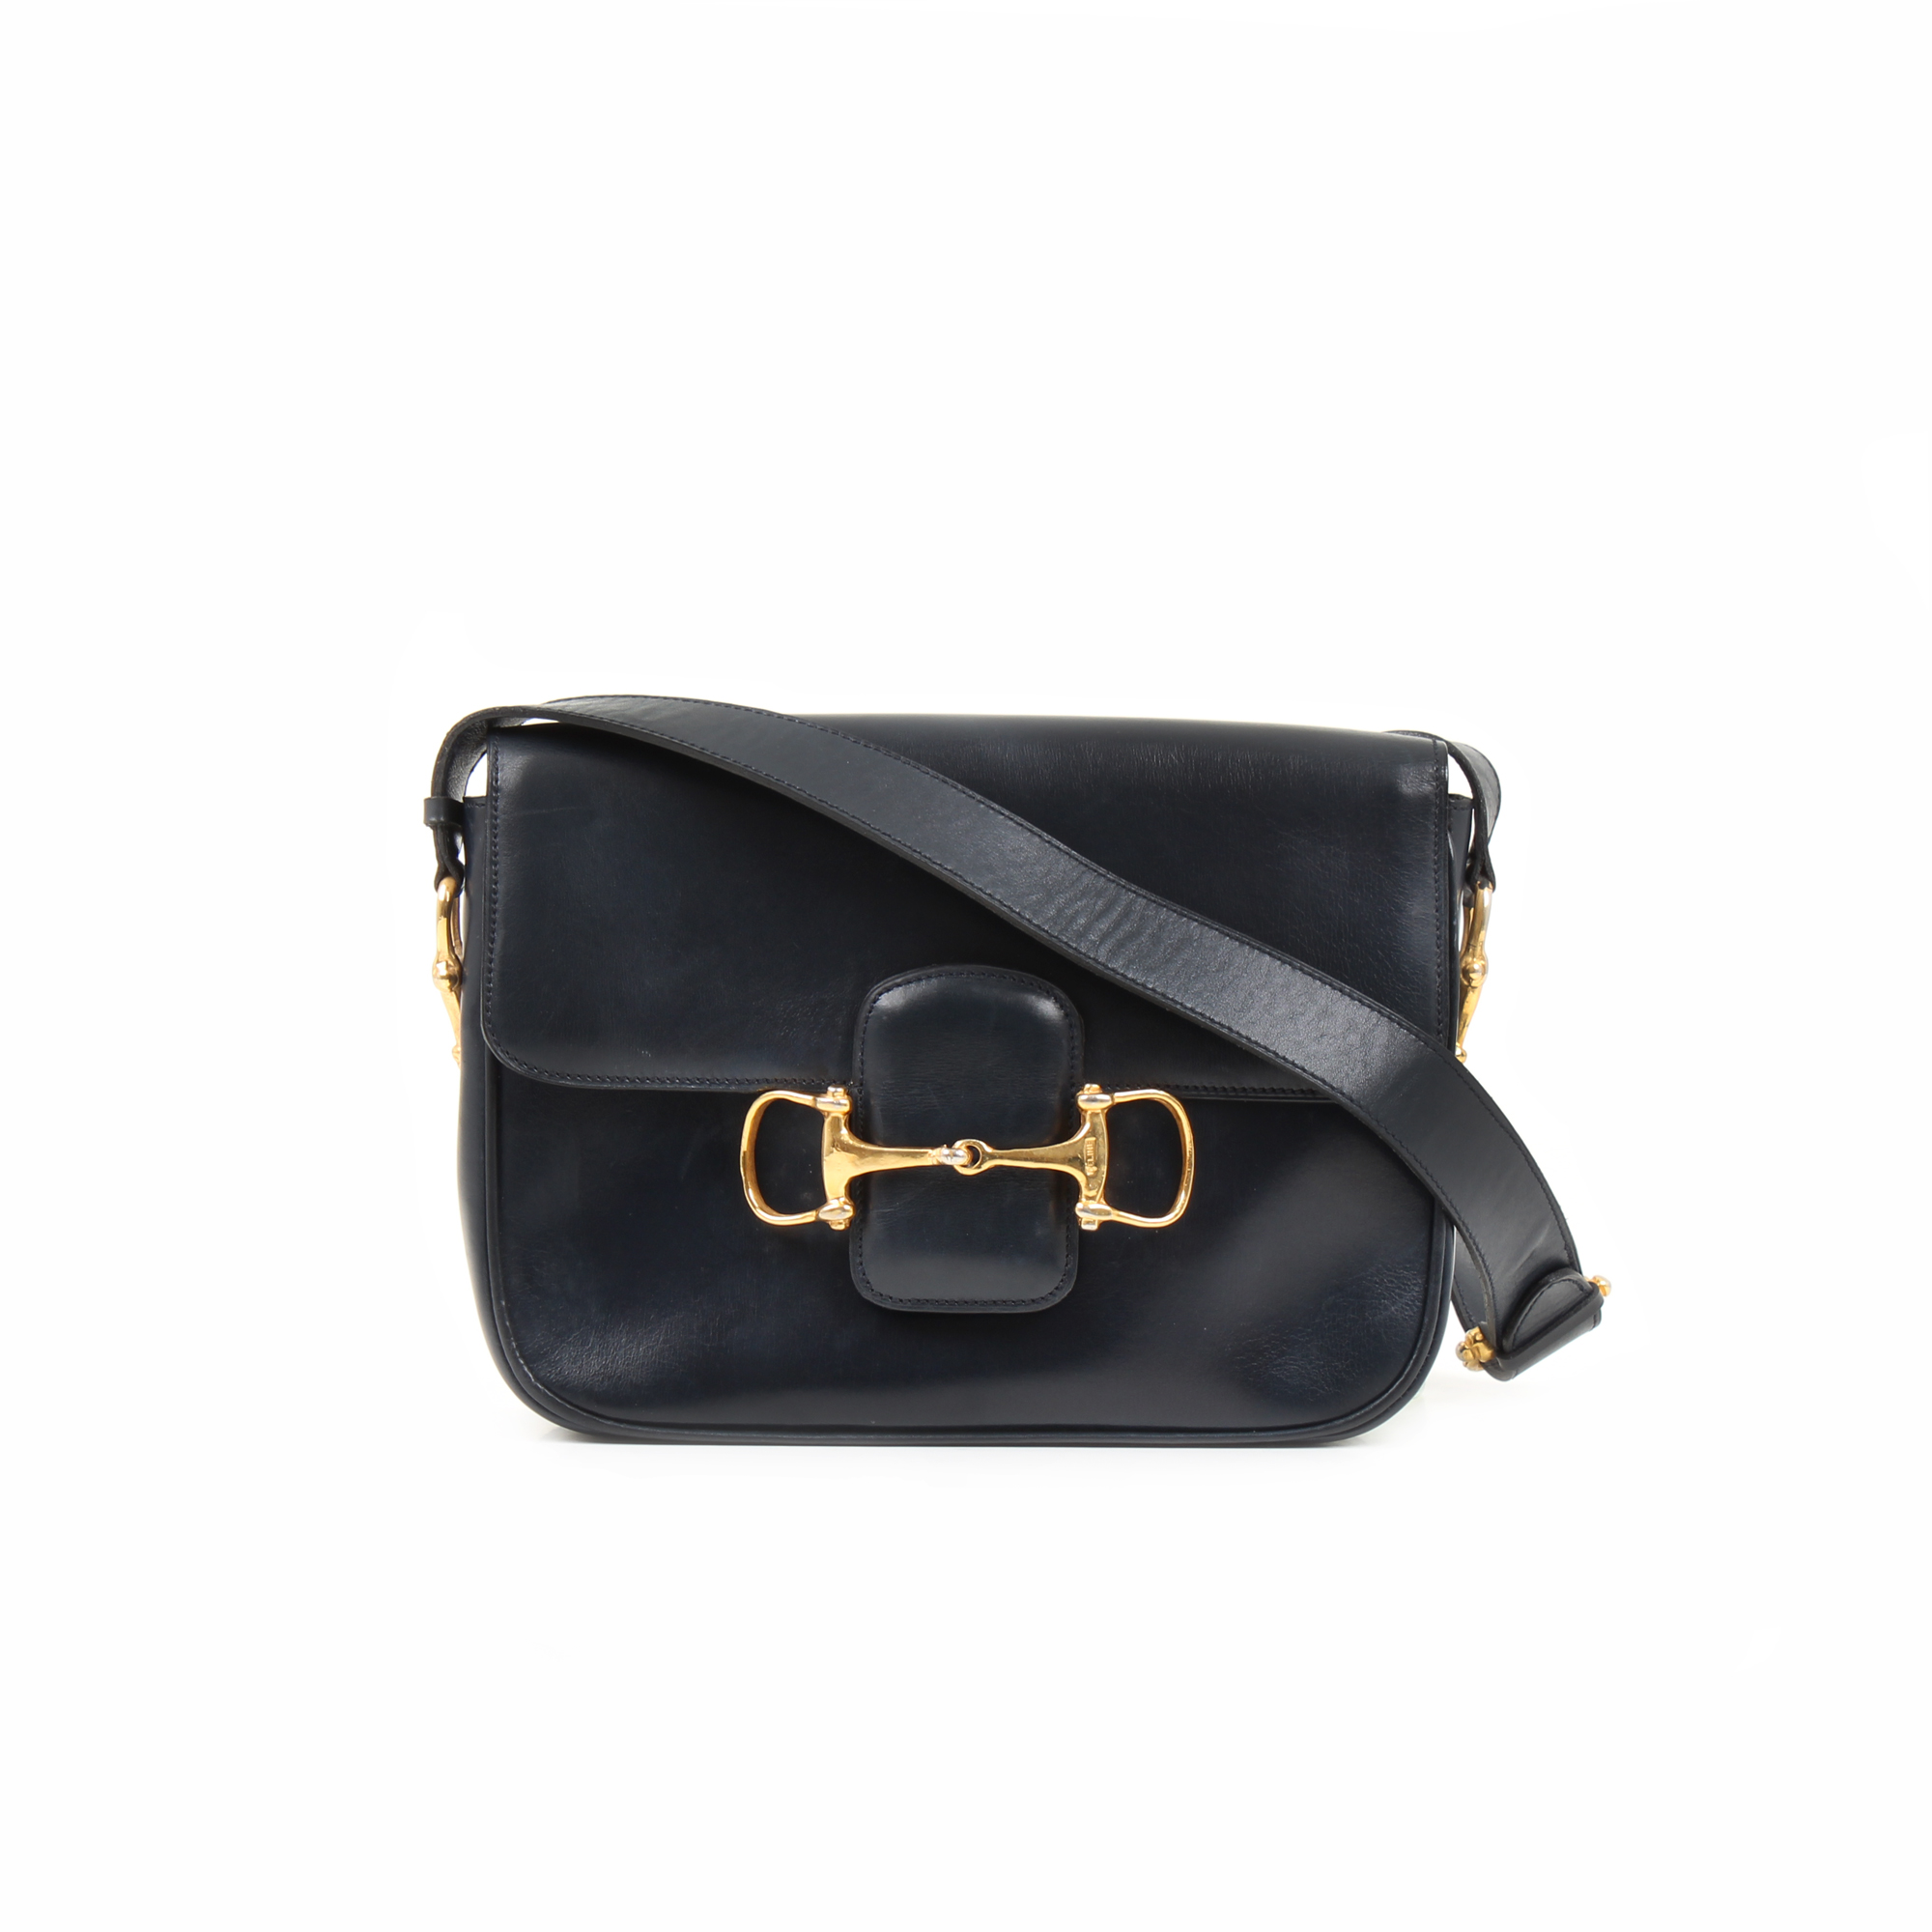 Front image of celine box vintage shoulder bag